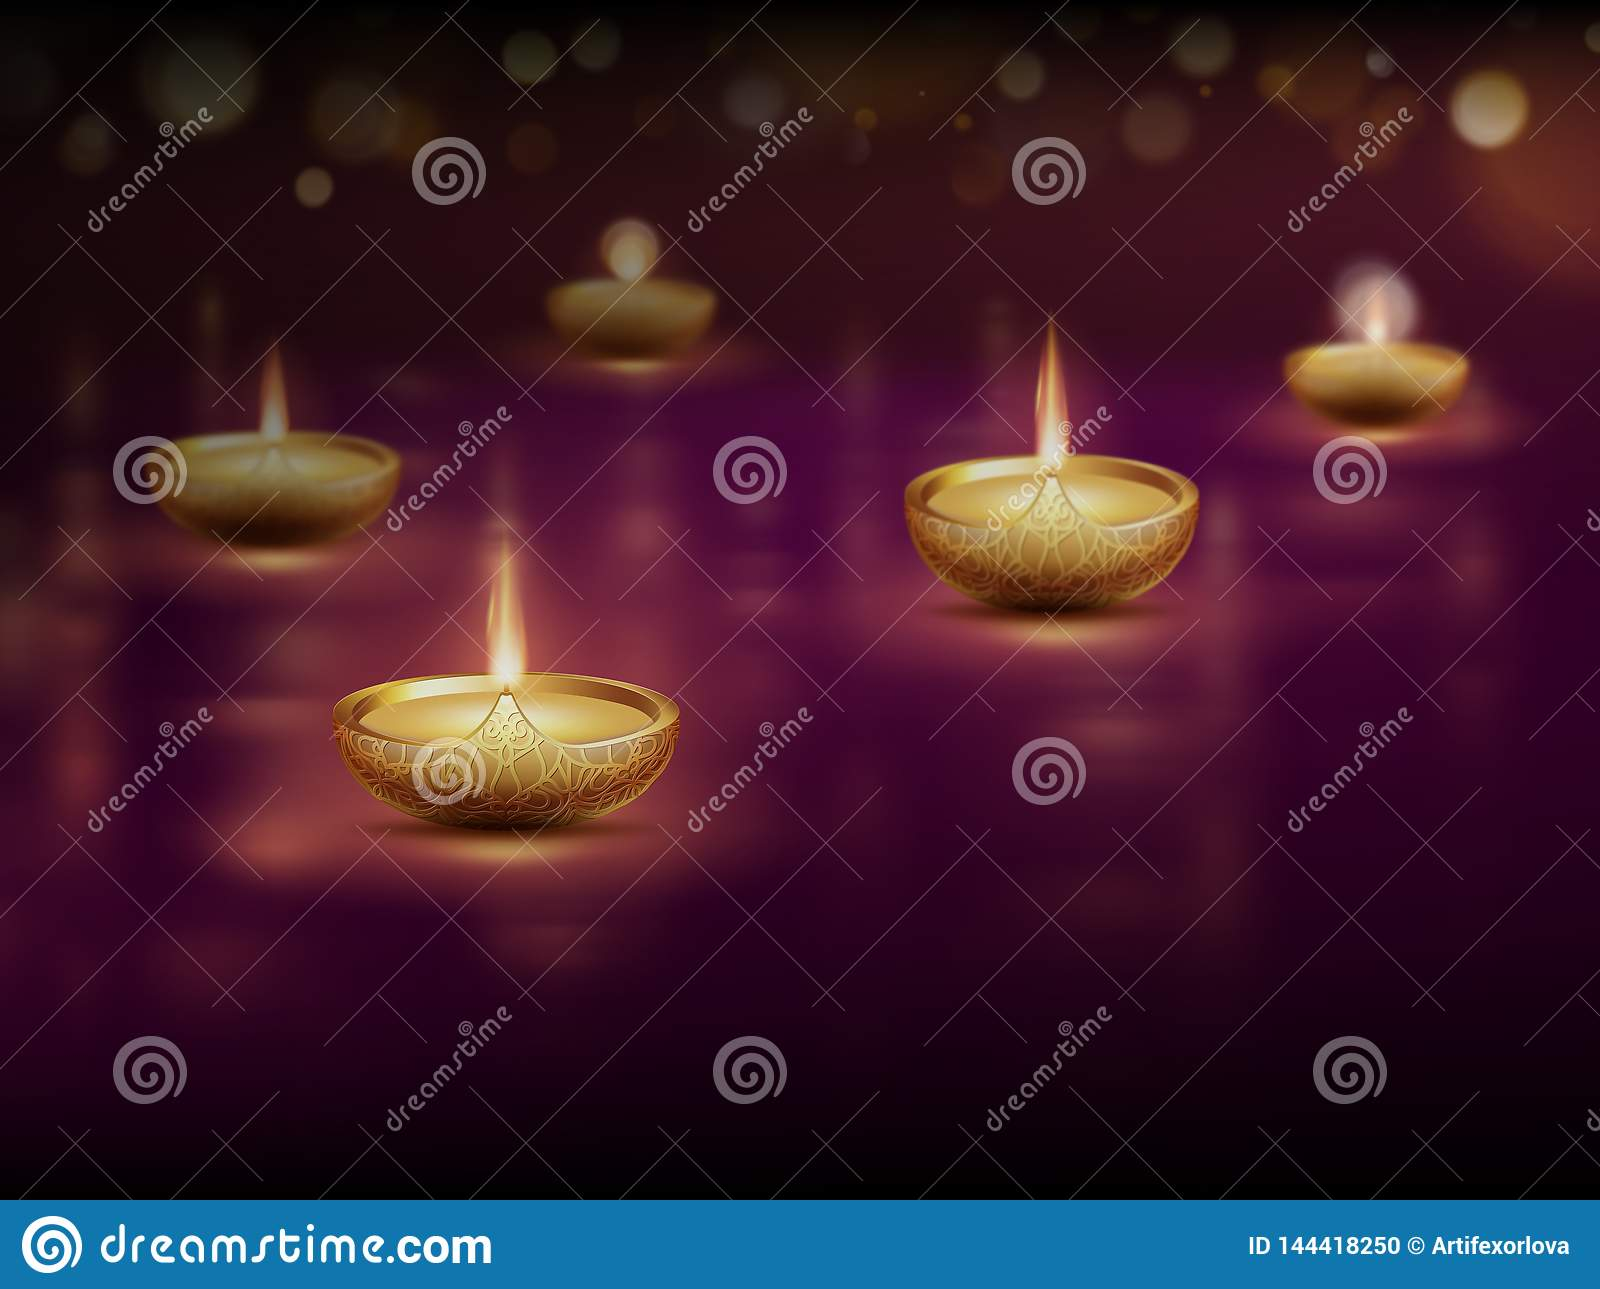 Happy Diwali Poster Template With Burning Diya Oil Lamps Candles